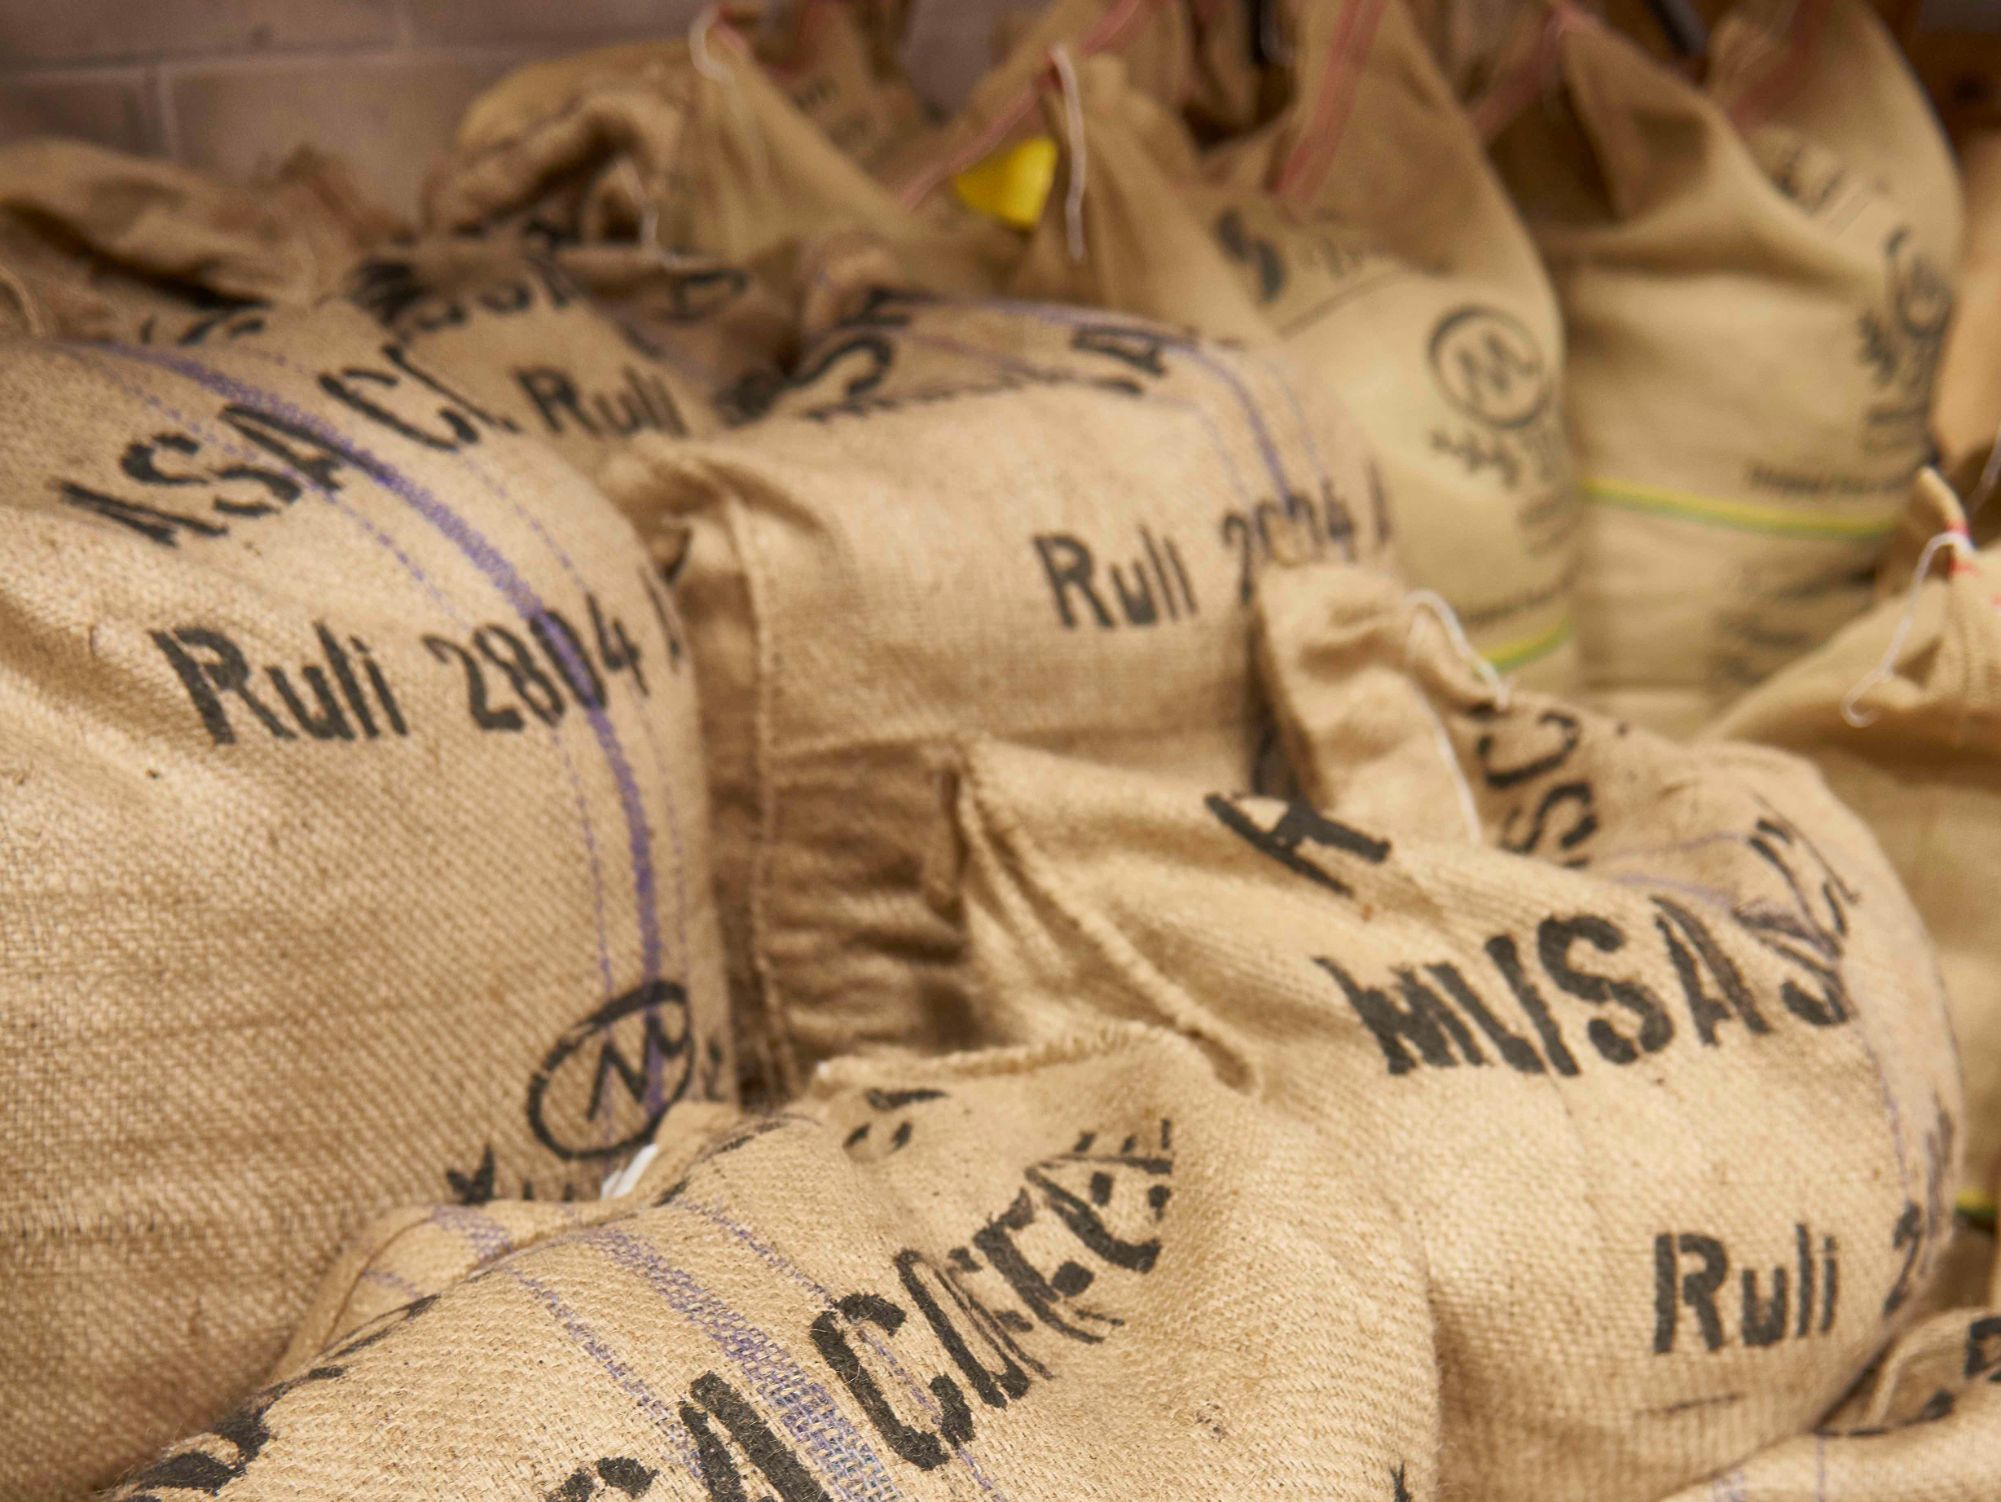 Blog: Where does our coffee come from?